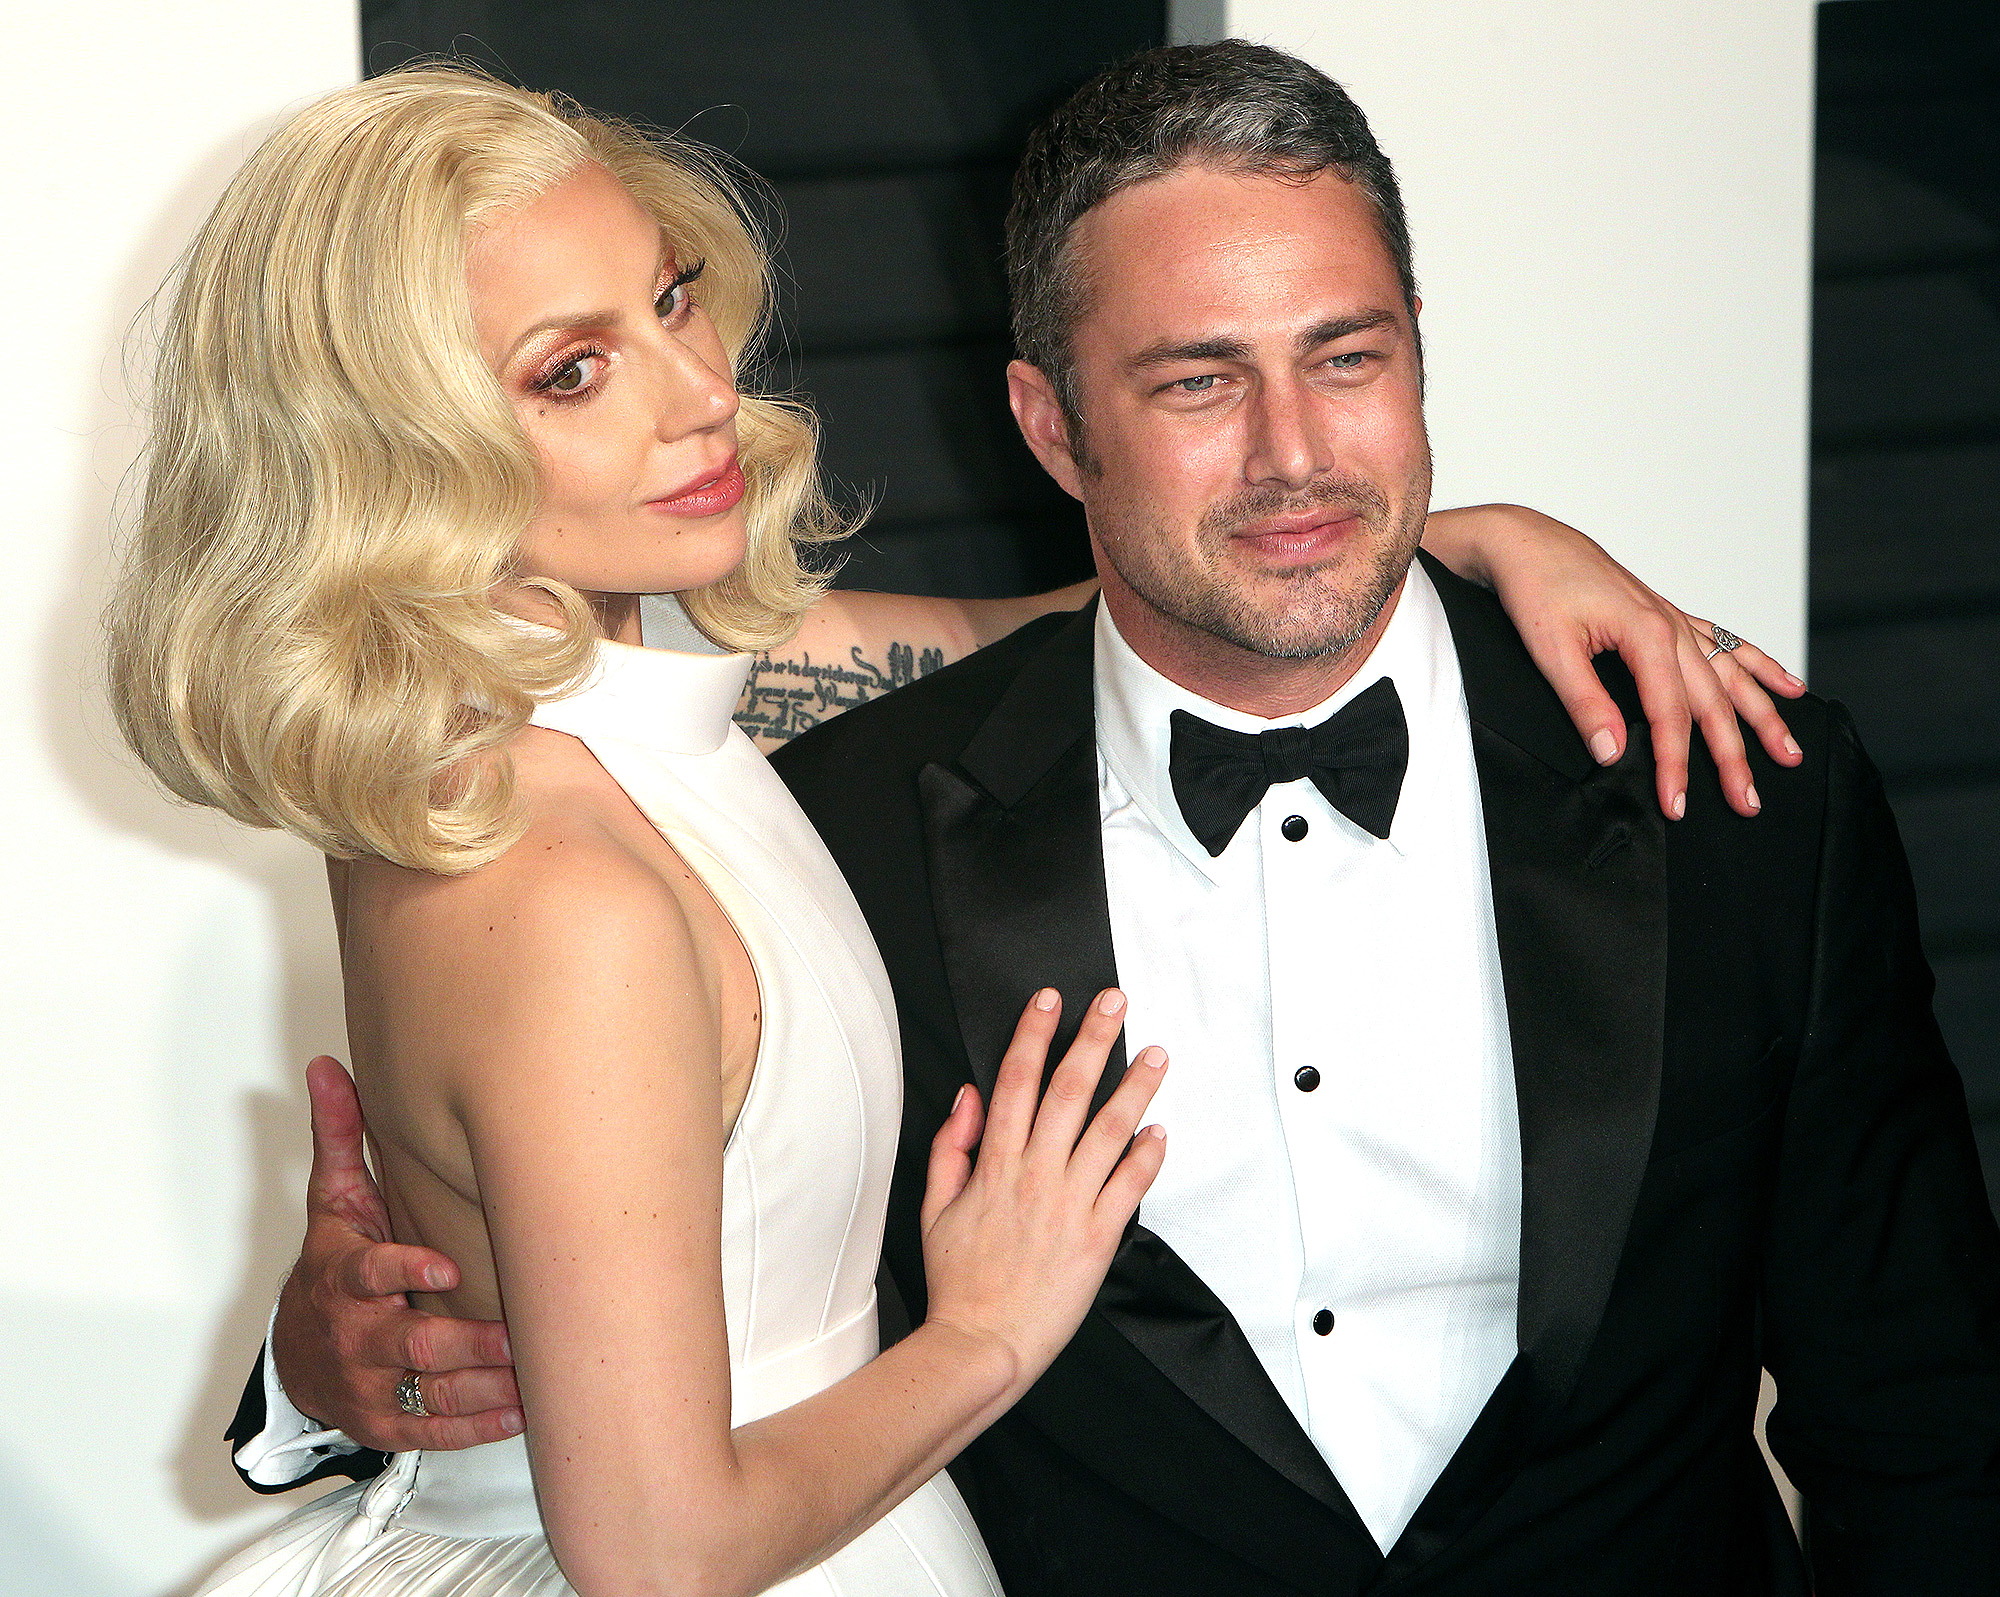 Lady Gaga S Ex Taylor Kinney Really Proud Of Star Is Born Success People Com